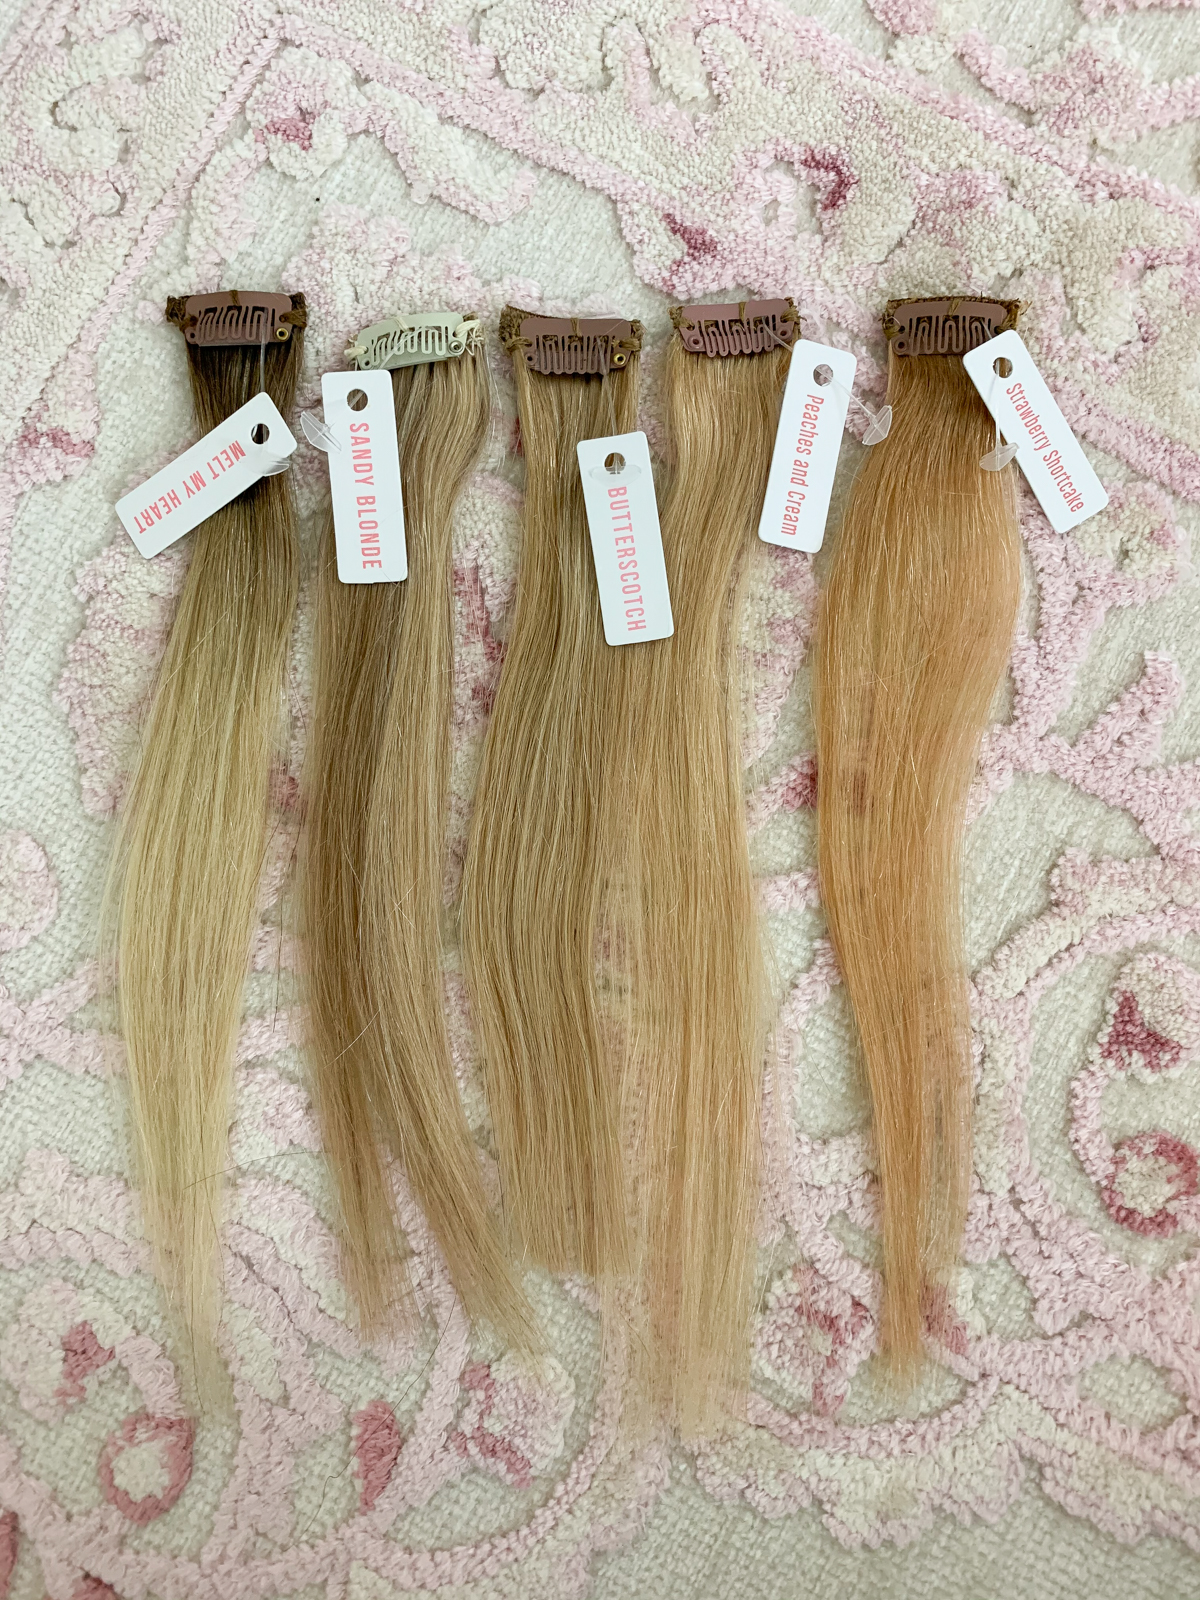 barefootblondehaircolorsamples